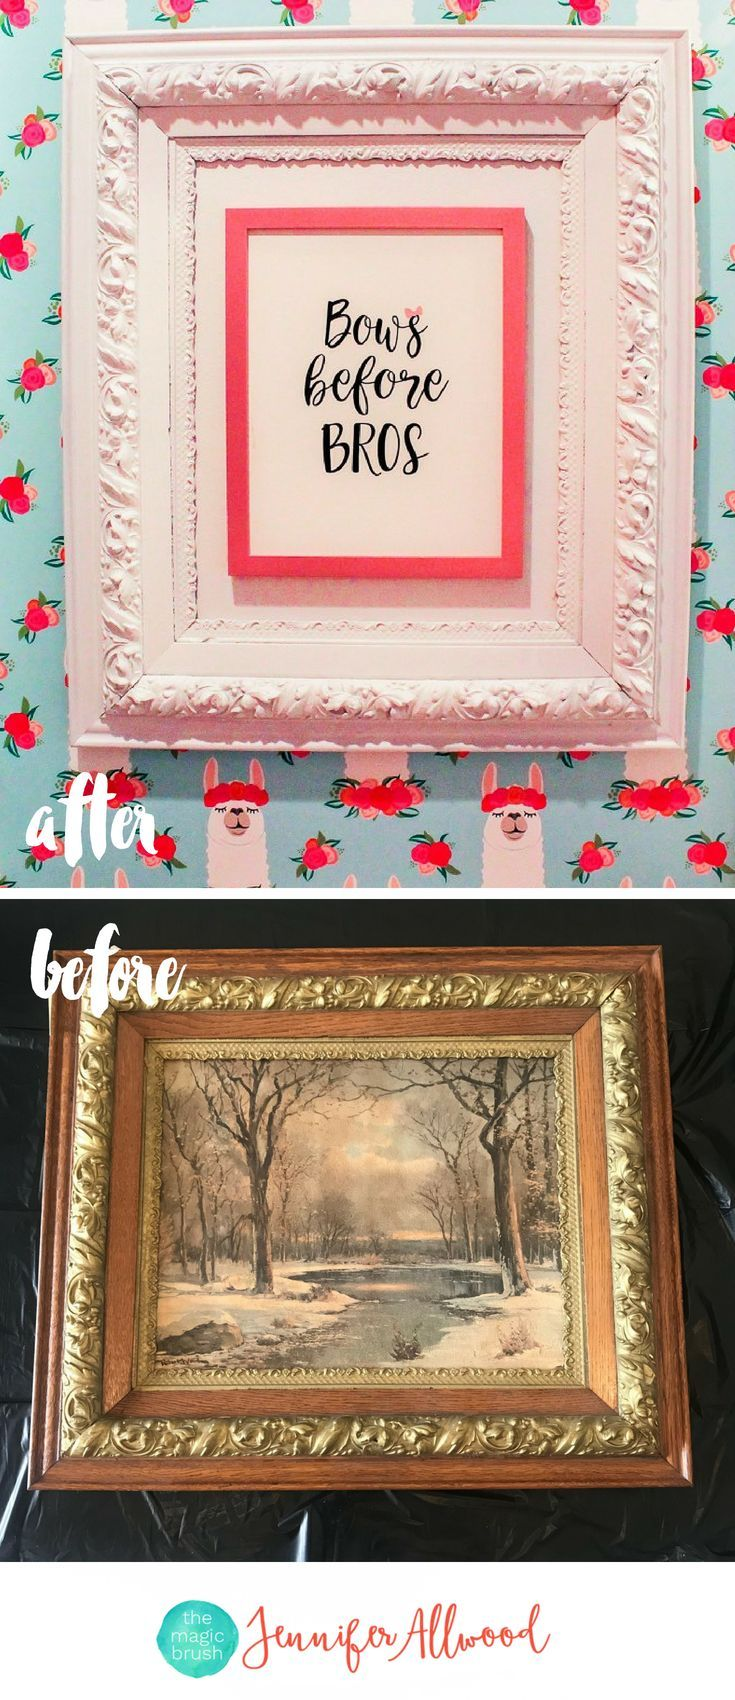 Ideas : Thrift Store Frame Makeover - How to Frame Small Art Prints to be Beautiful and Oversized by Jennifer Allwood - Repurposed Picture Frame Ideas #diy #repurposed #walldecor #girlart #upcycled #hobbylobbyfinds Girls Bathroom Art  #homedecor #bathroom